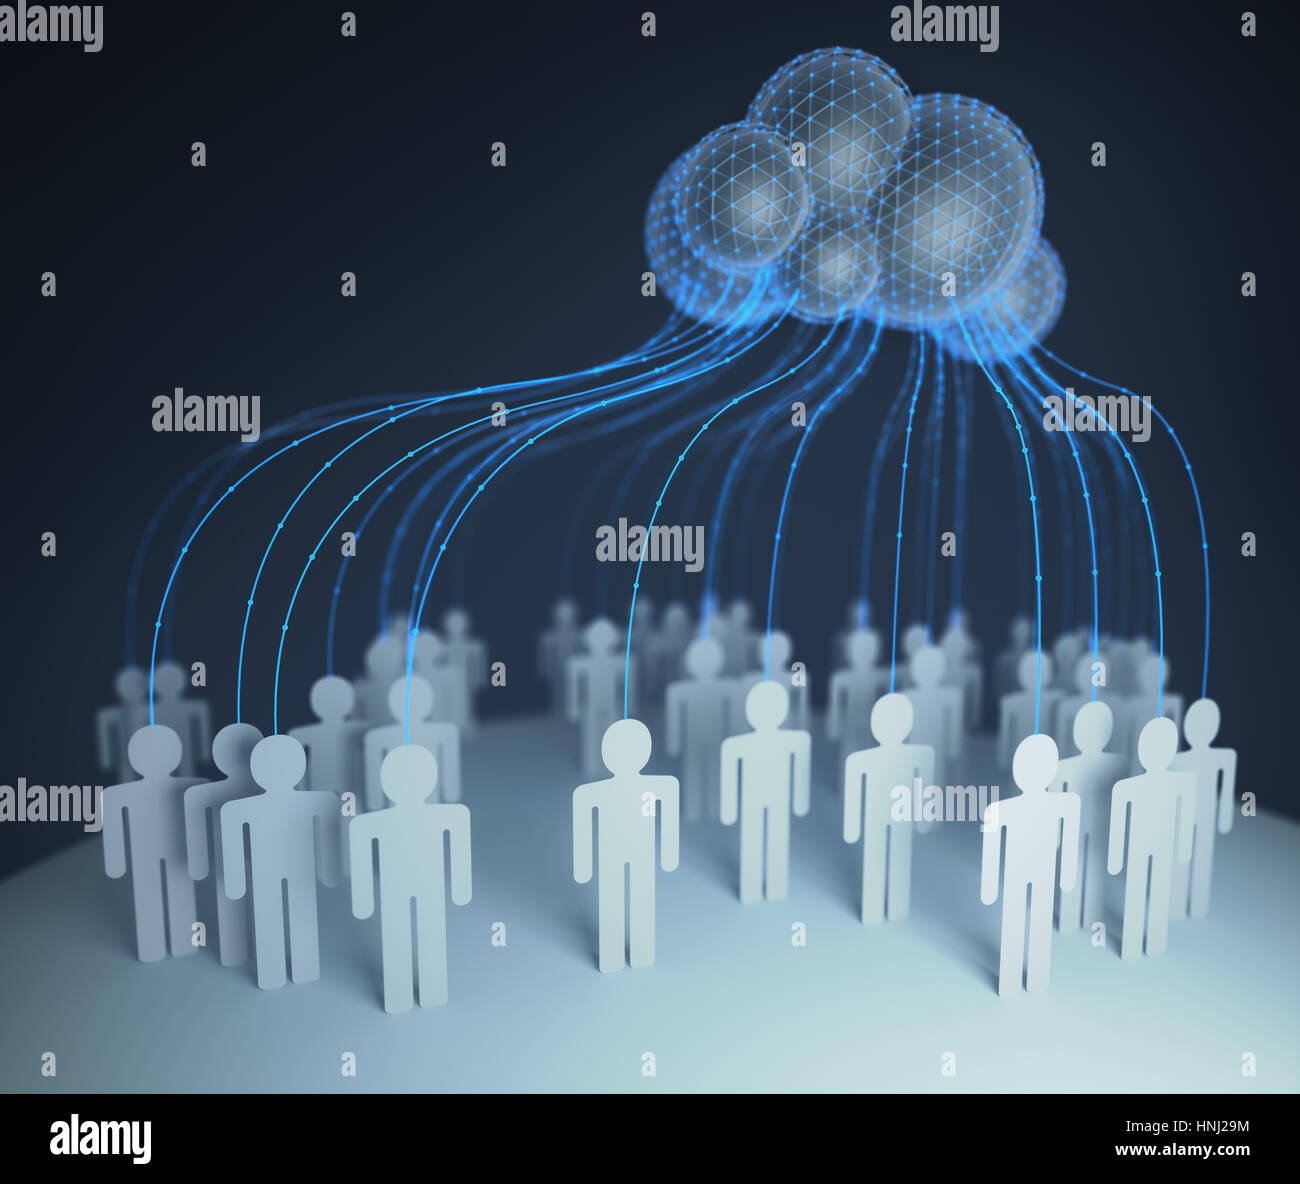 People of the world interconected through the shared computer processing resources and data to computers, cloud - Stock Image